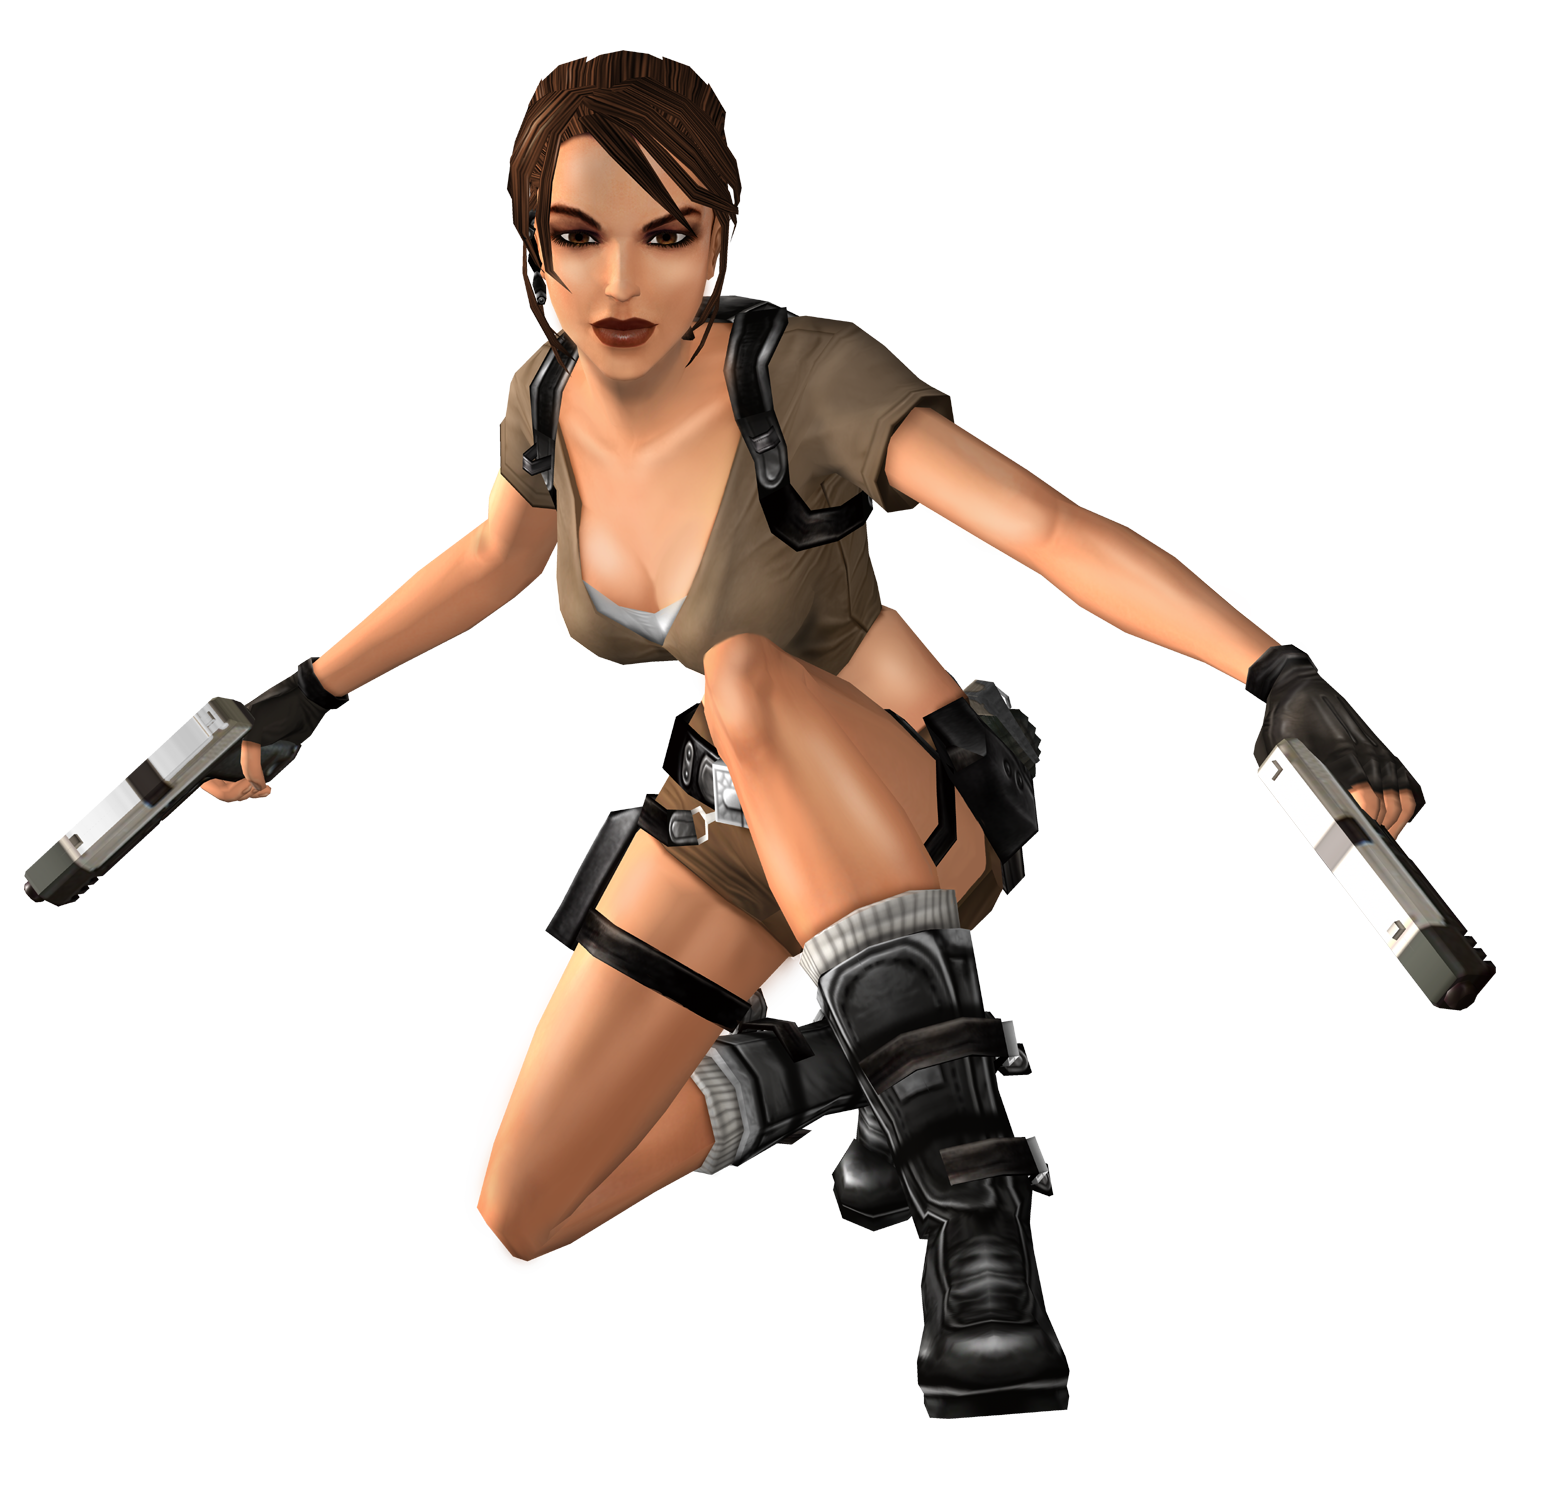 Lara Croft PNG Images Transparent Background.